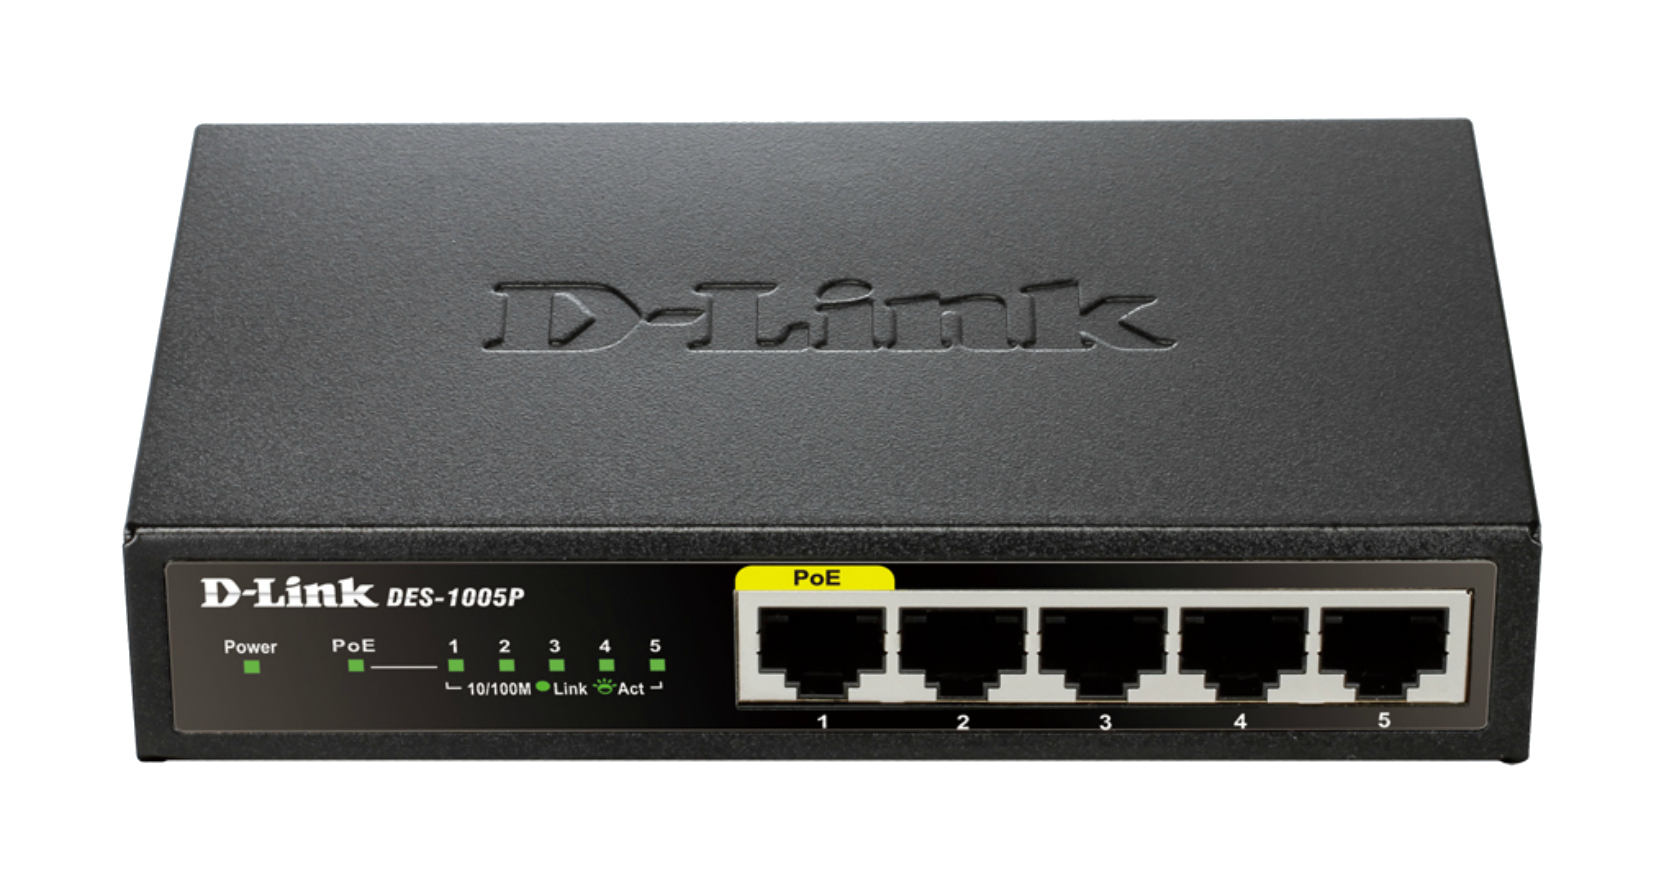 D-LINK DES-1005P/E UNMANAGED NETWORK SWITCH L2 FAST ETHERNET (10/100) POWER OVER (POE) BLACK